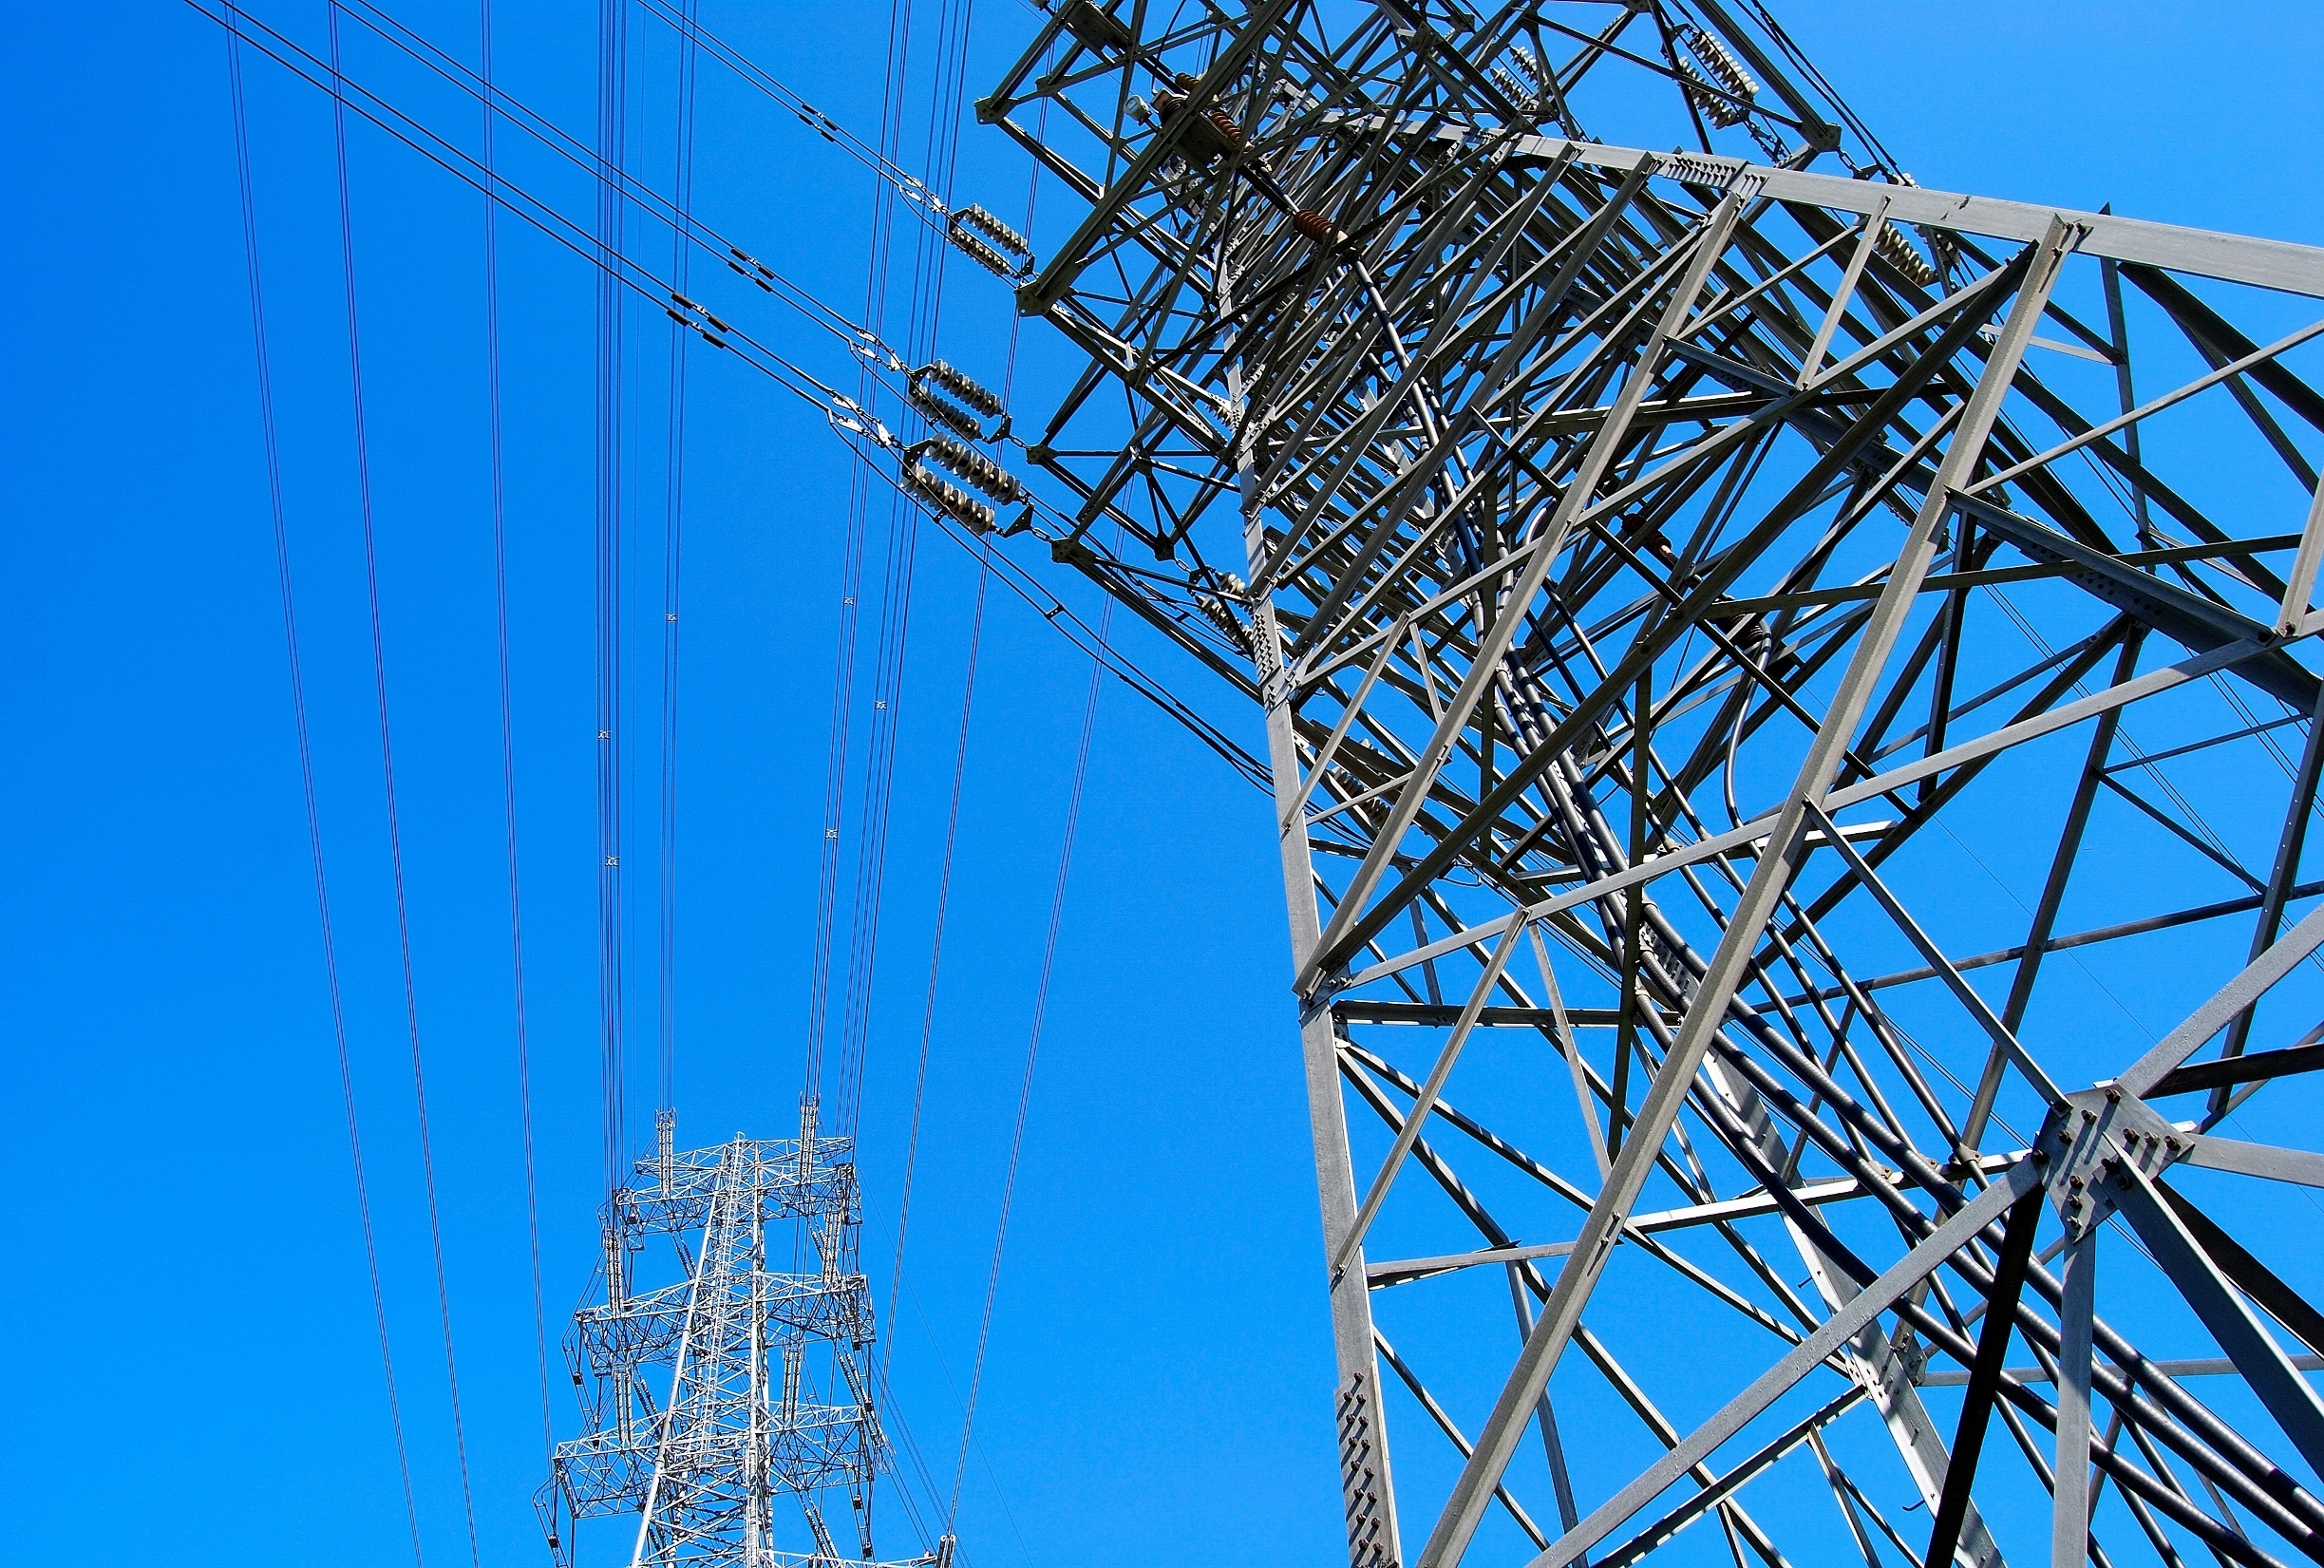 electricity pylons with lines crossing in the sky